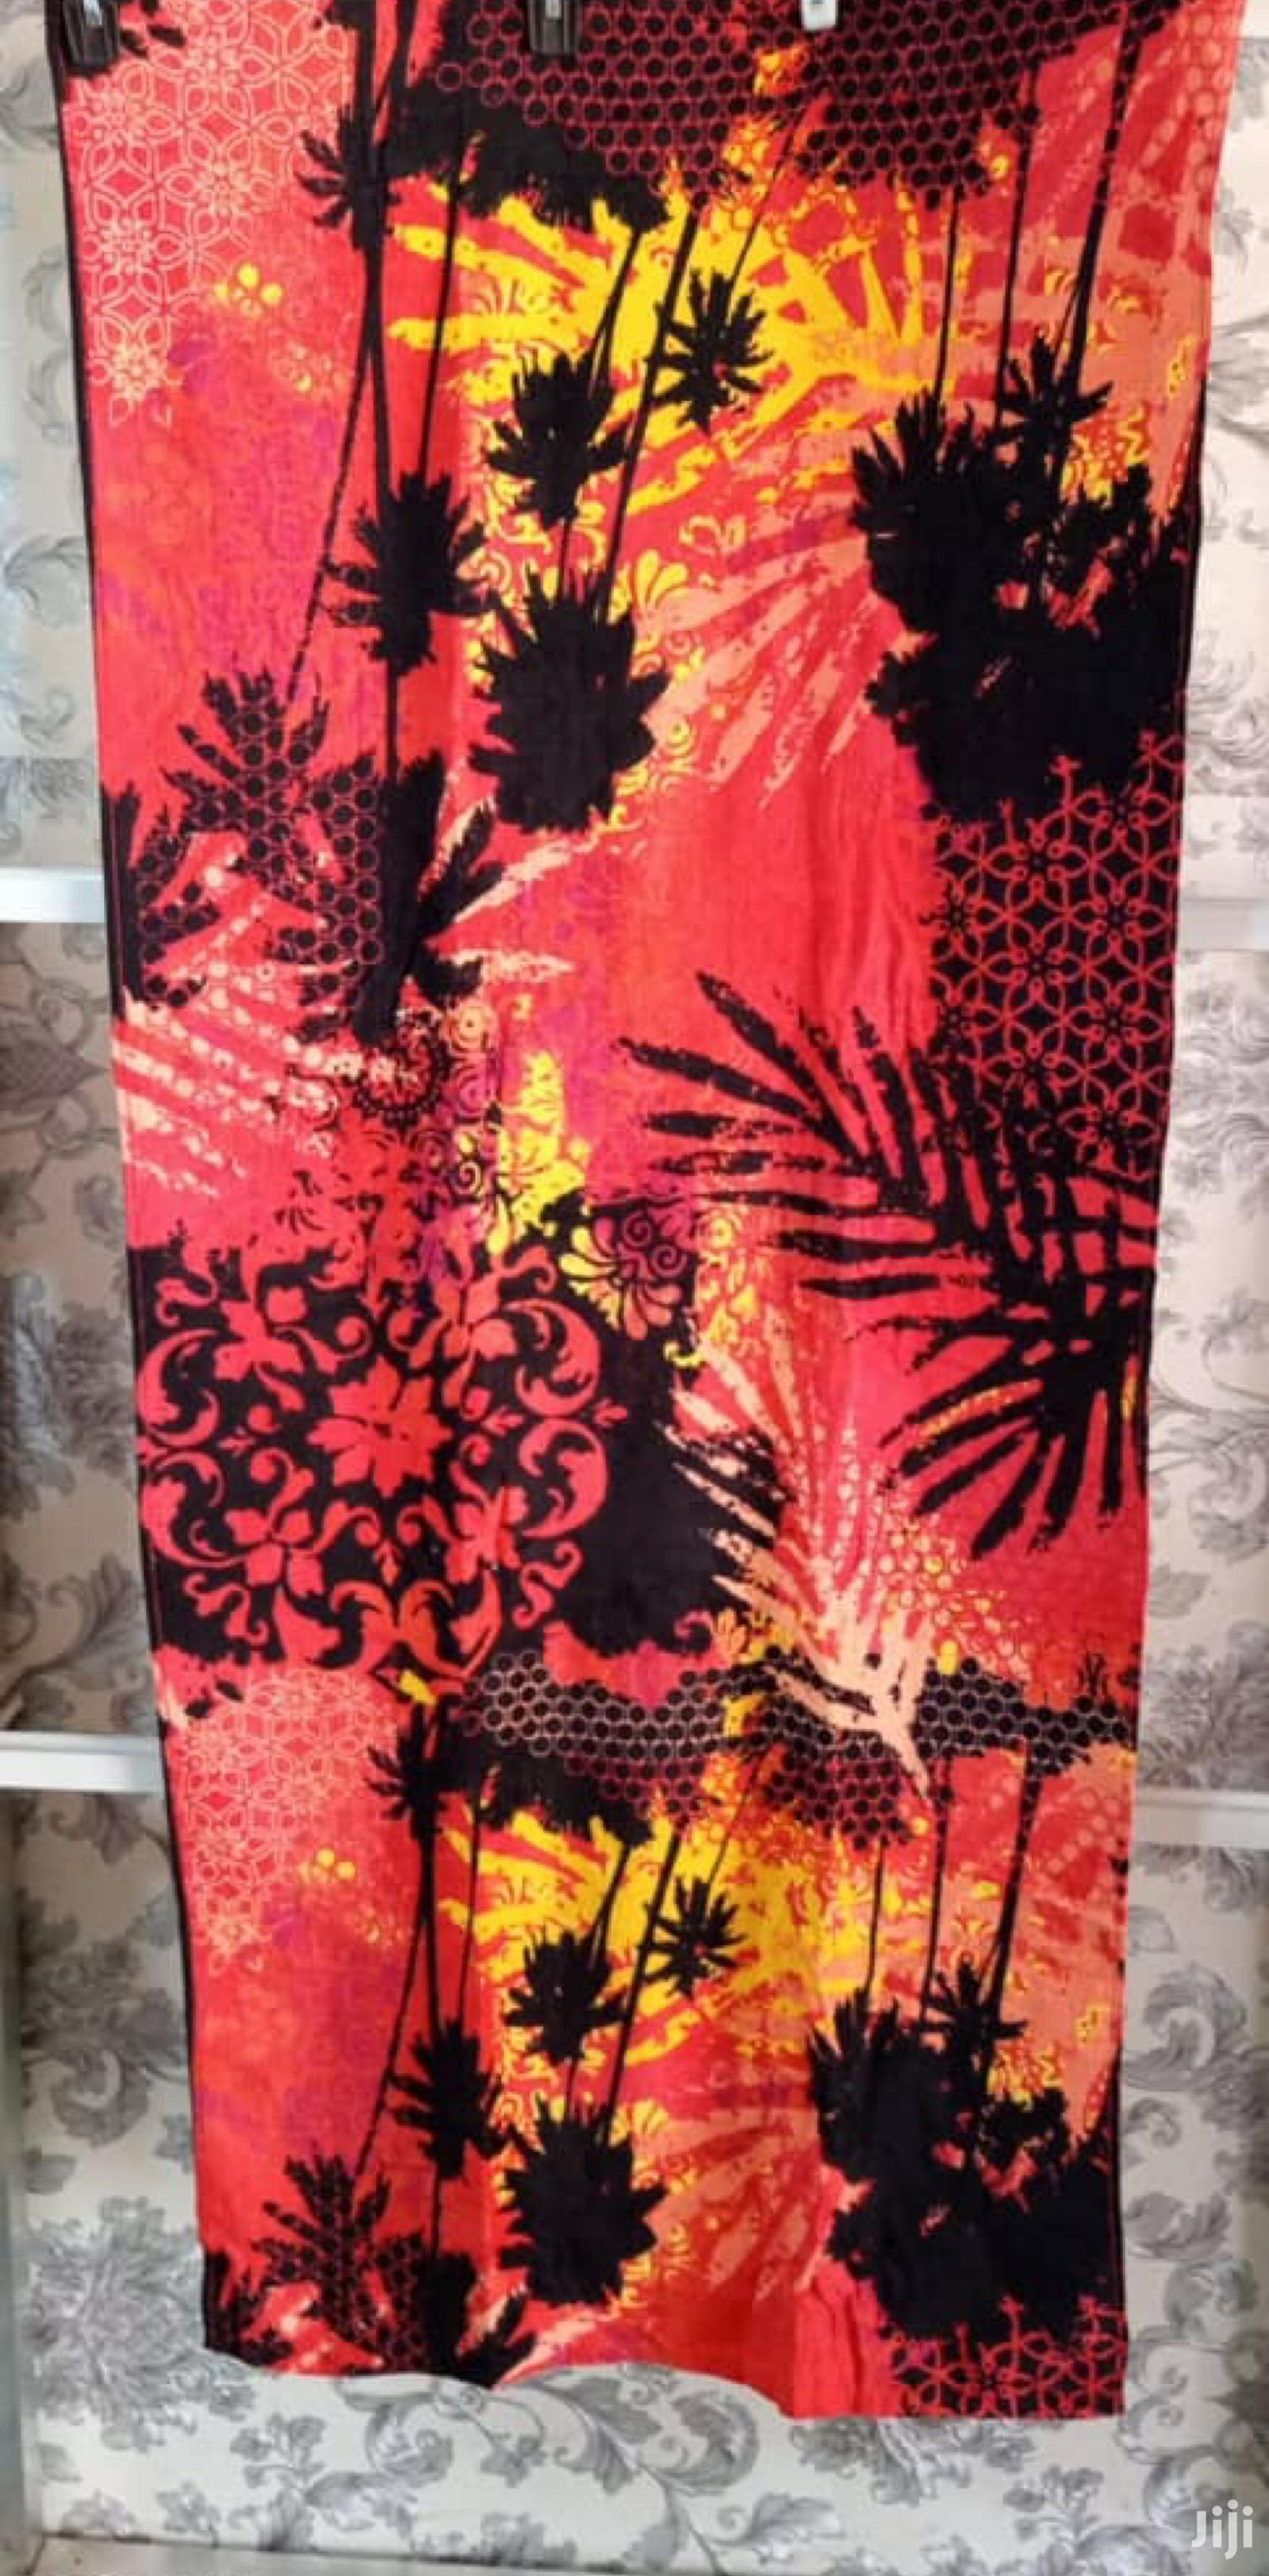 Towels Bath or Beach | Home Accessories for sale in Madina, Greater Accra, Ghana